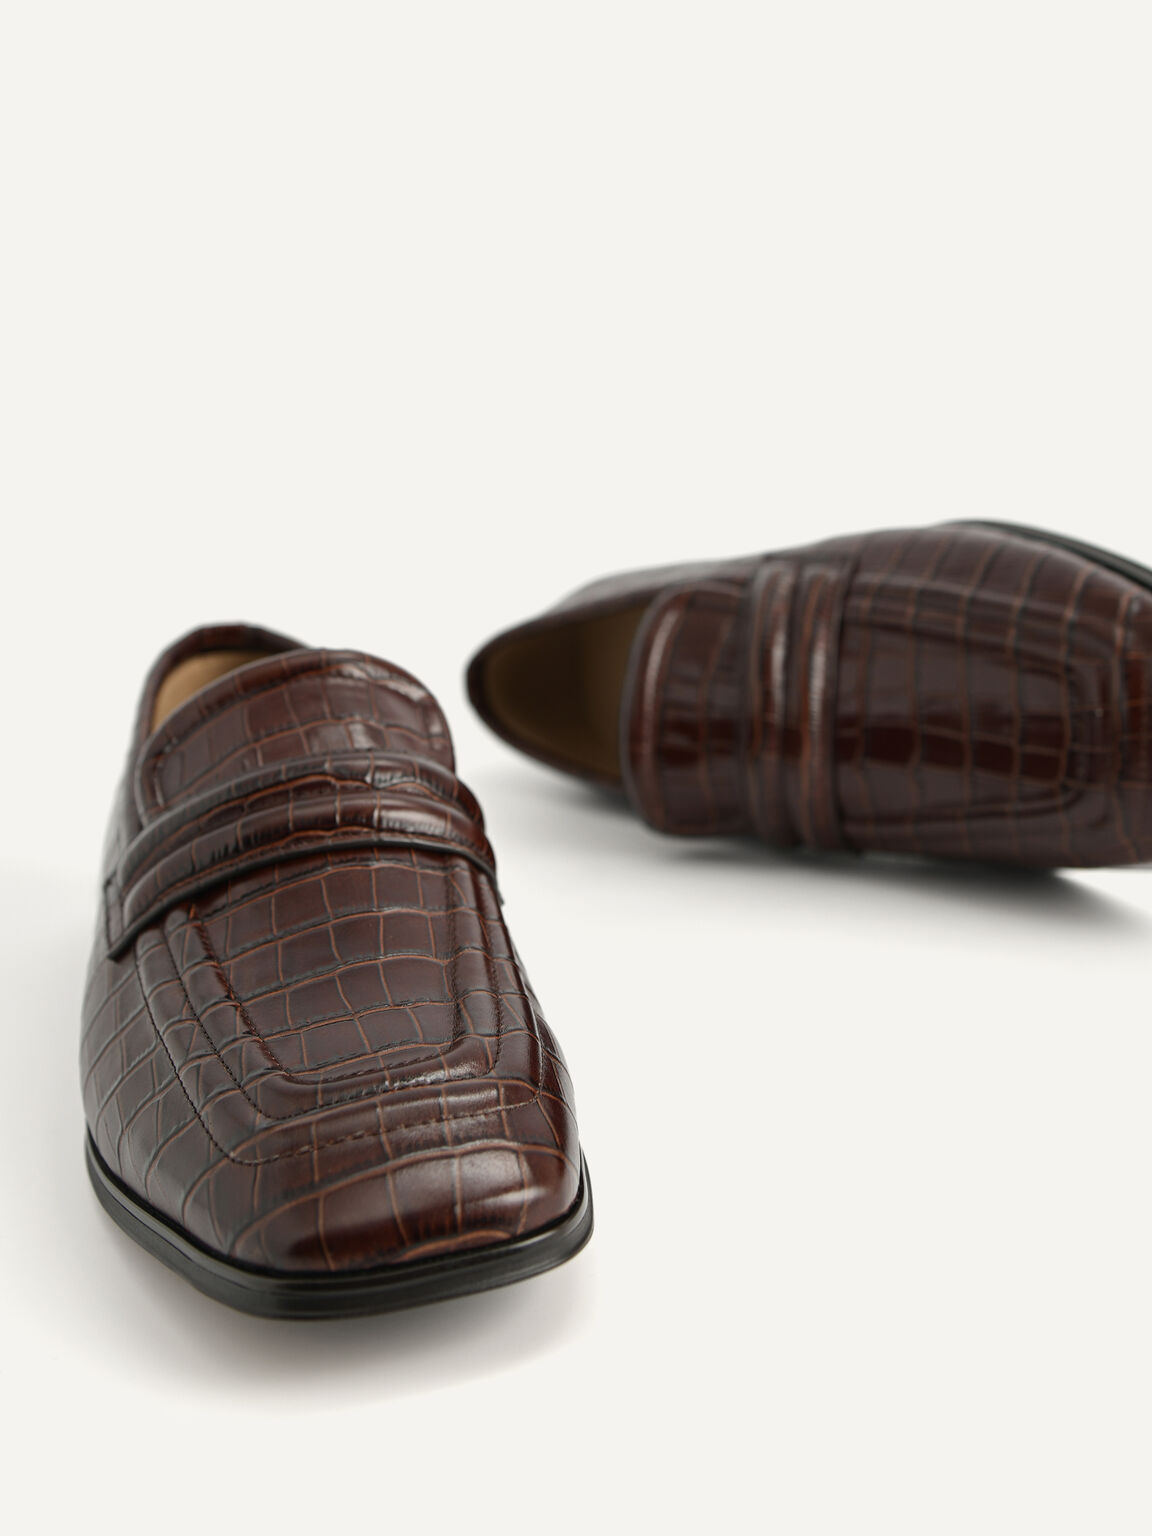 Croc-Effect Leather Loafers, Dark Brown, hi-res